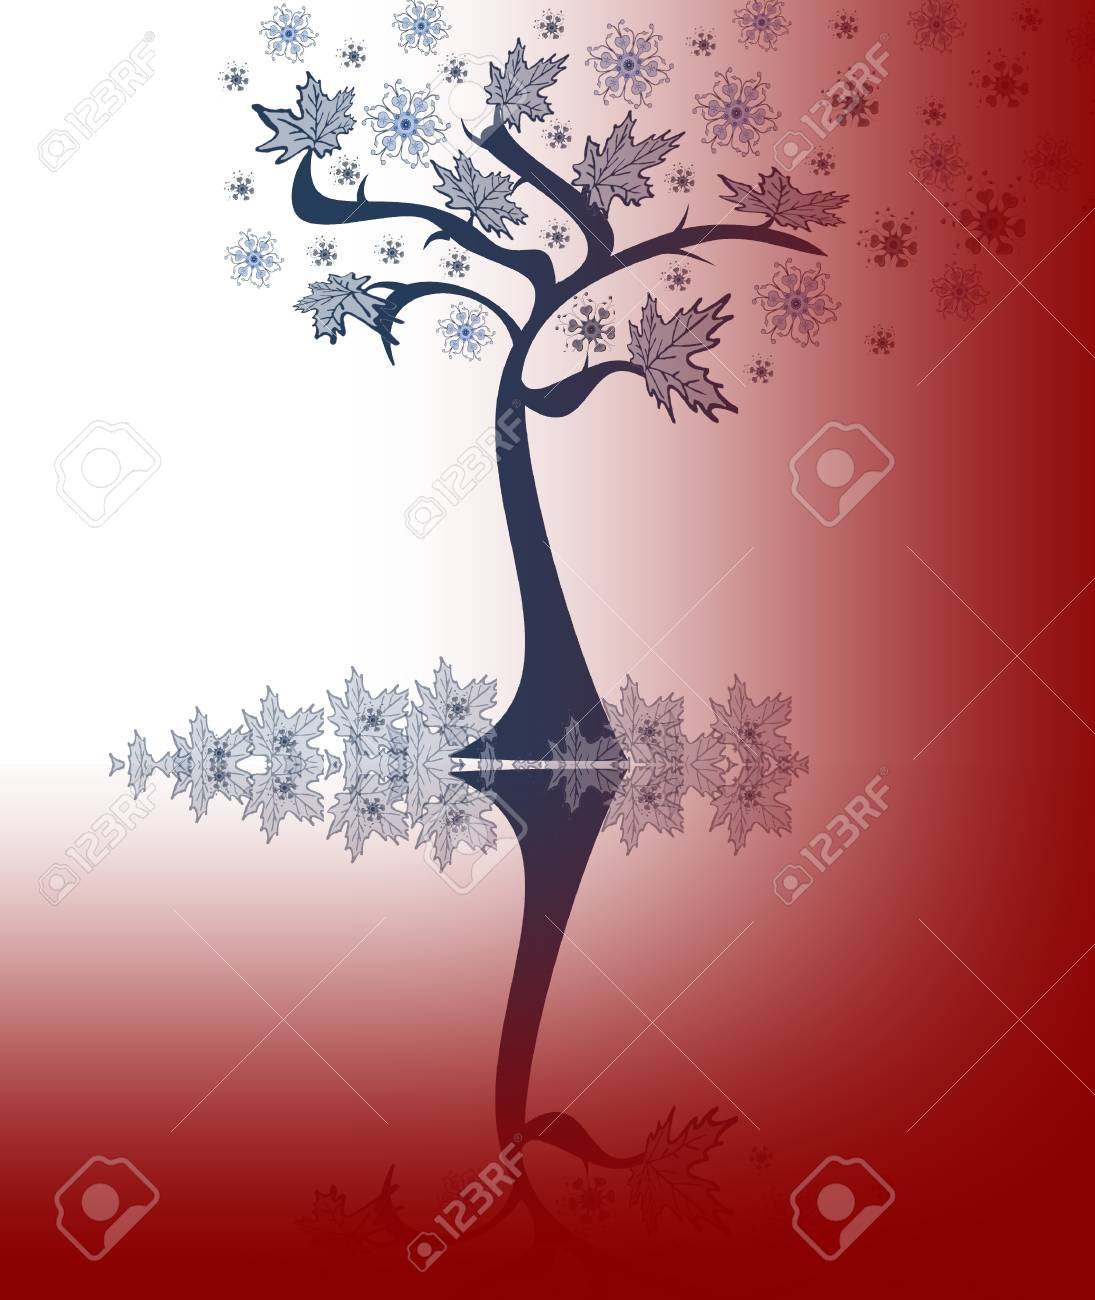 Abstraction  tree with leaves, snowflakes on a red-white background Stock Photo - 15754260